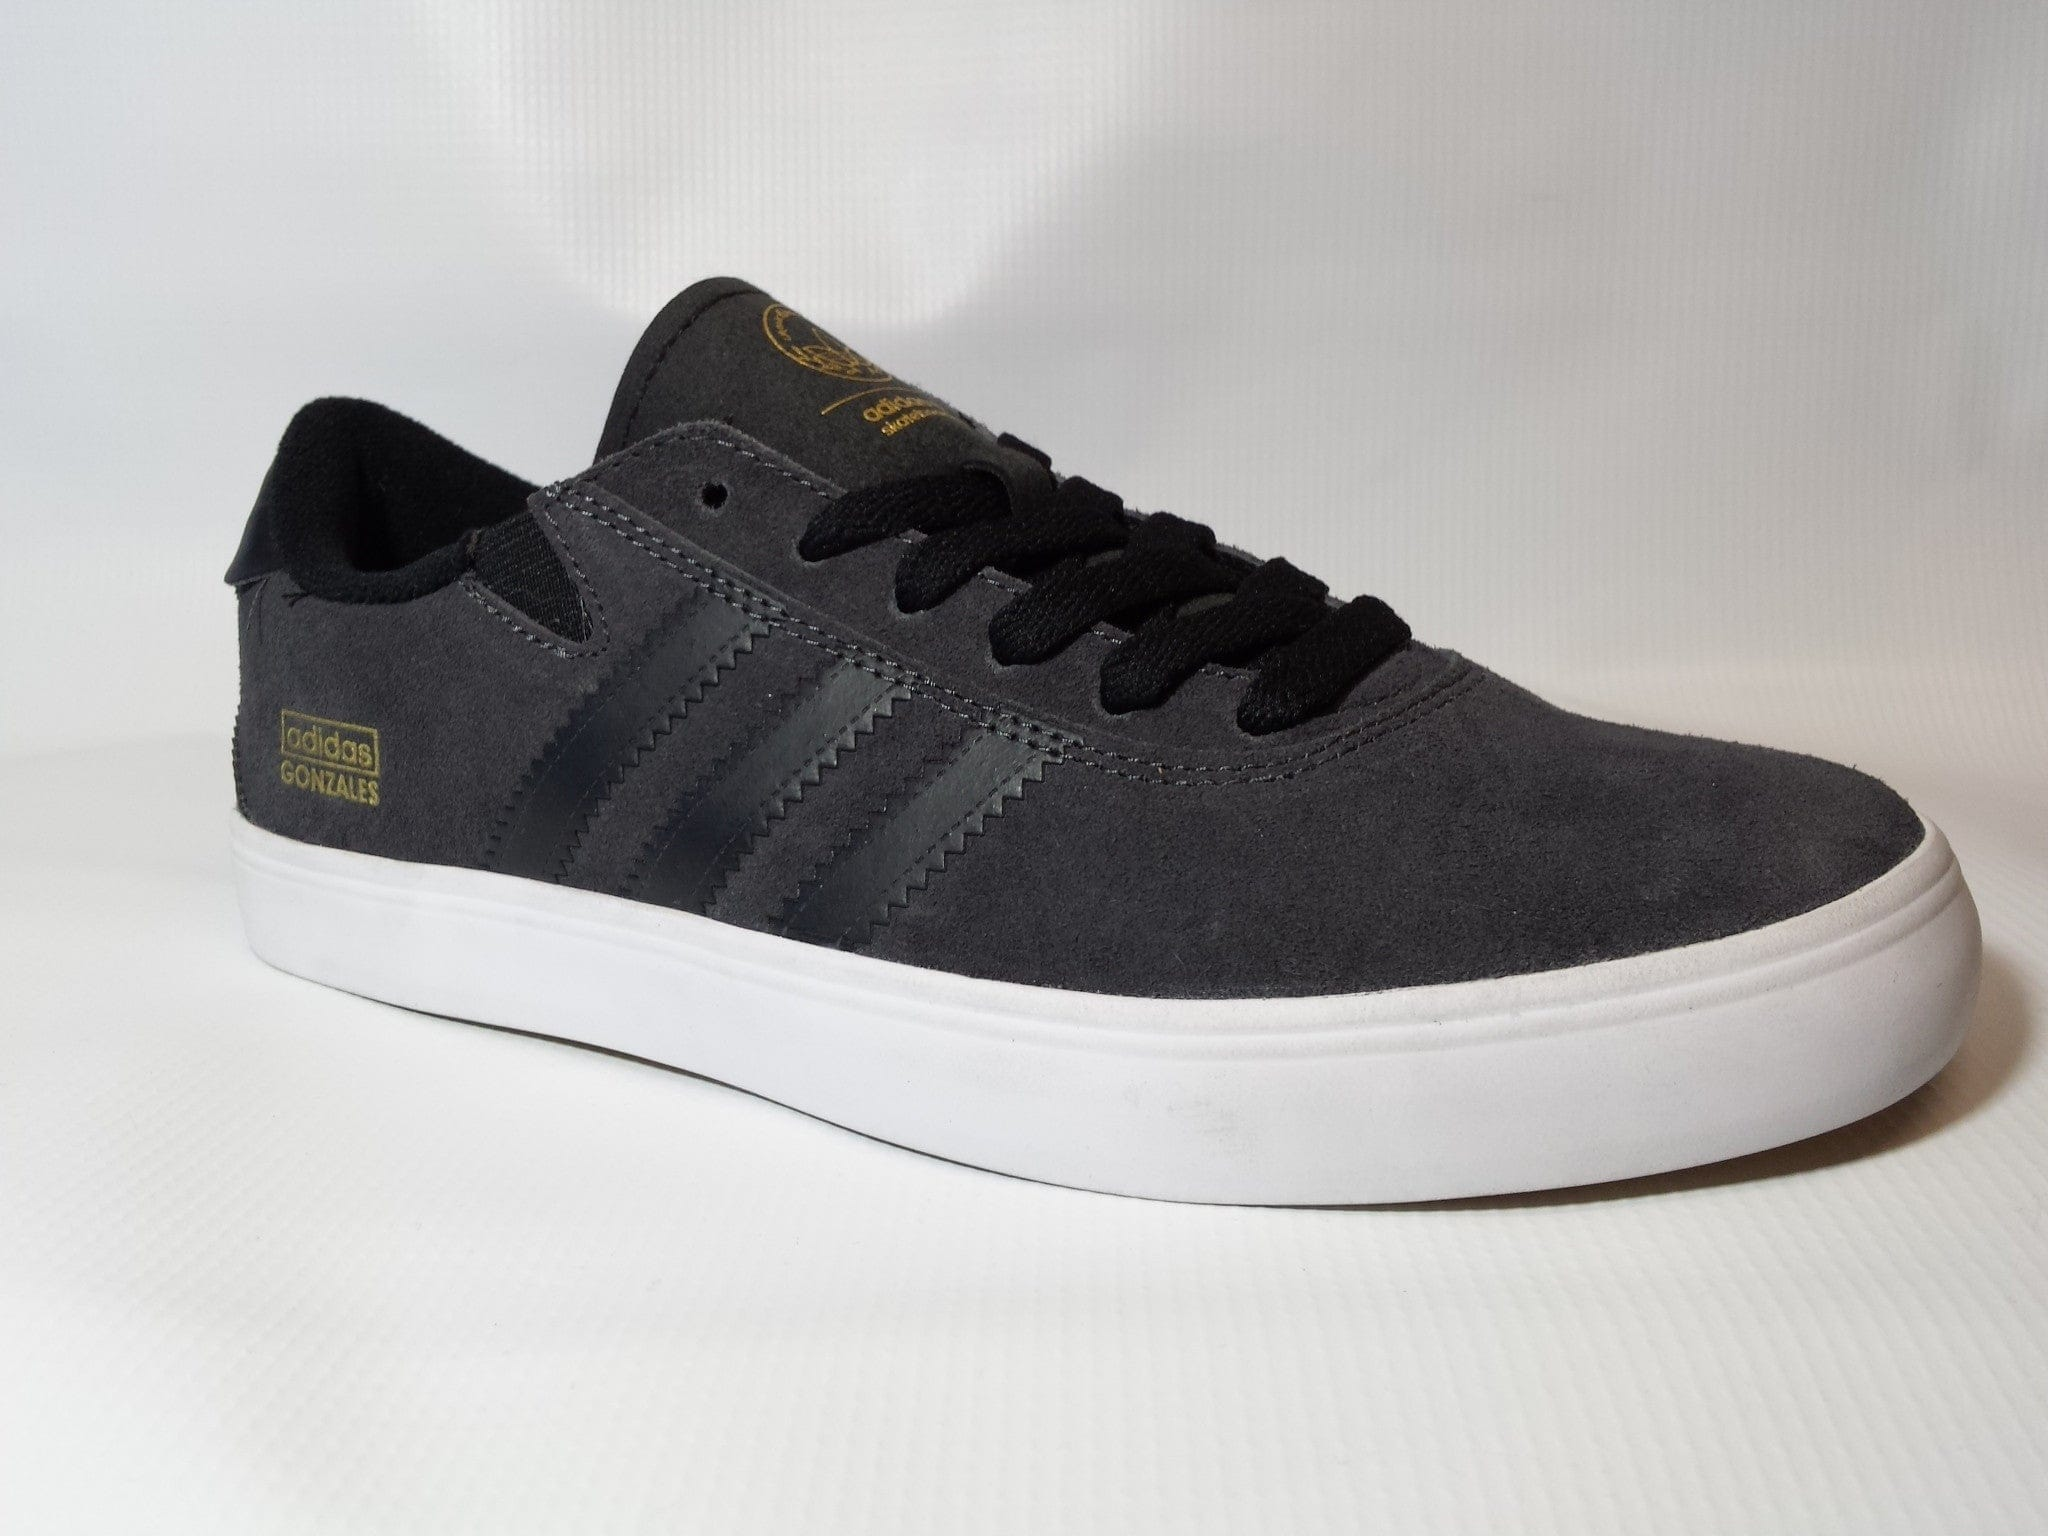 sports shoes 2b988 2467a Adidas  Gonz Pro - Dark GreyBlackWhite – THIS Skate and Snow